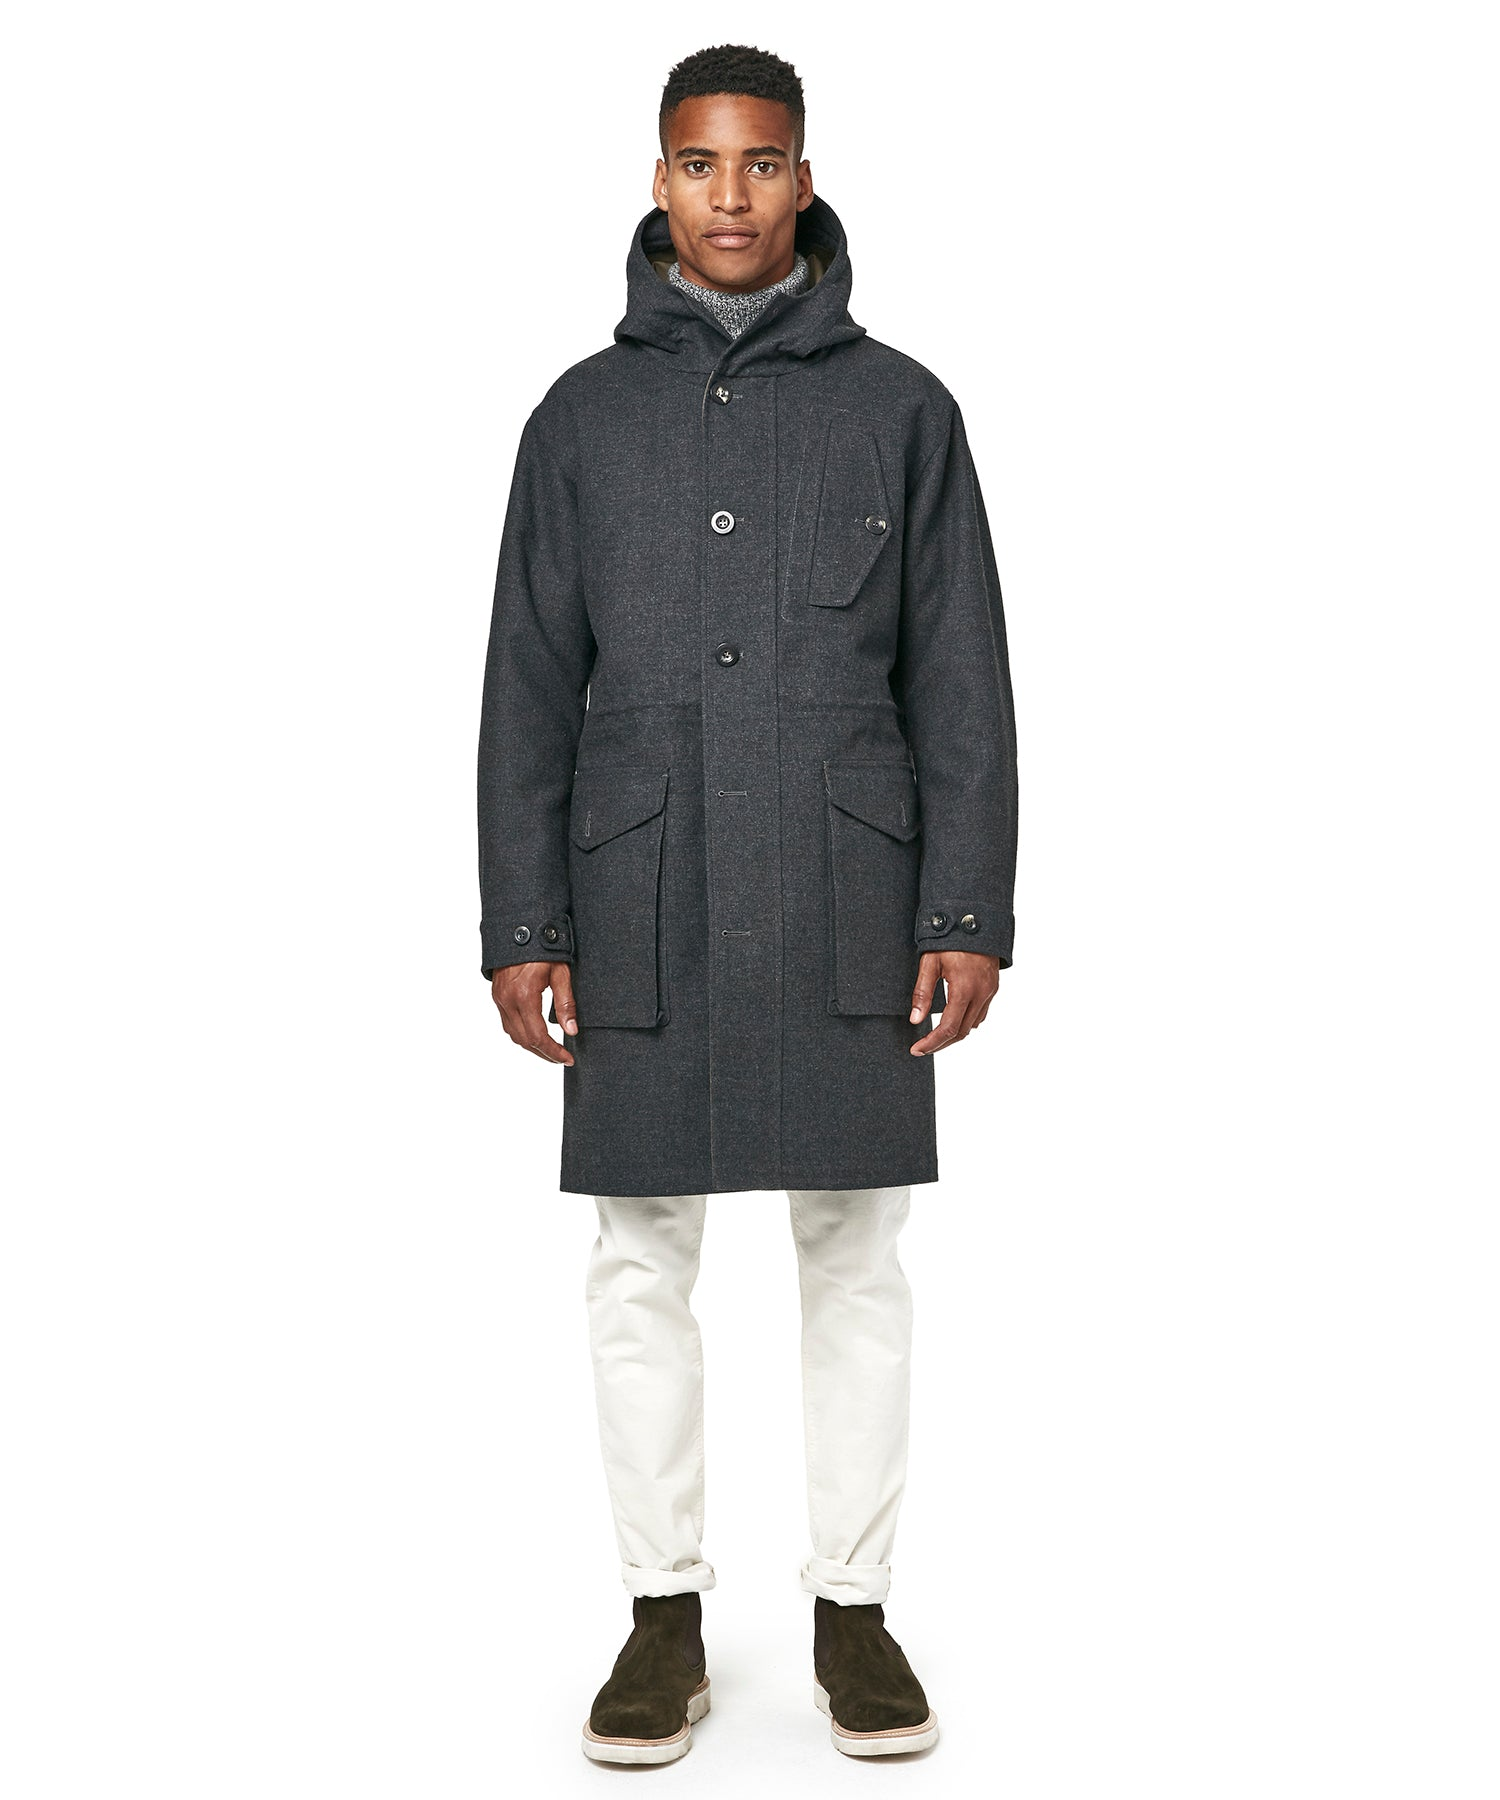 Exclusive Private White V.C Wool Parka in Charcoal